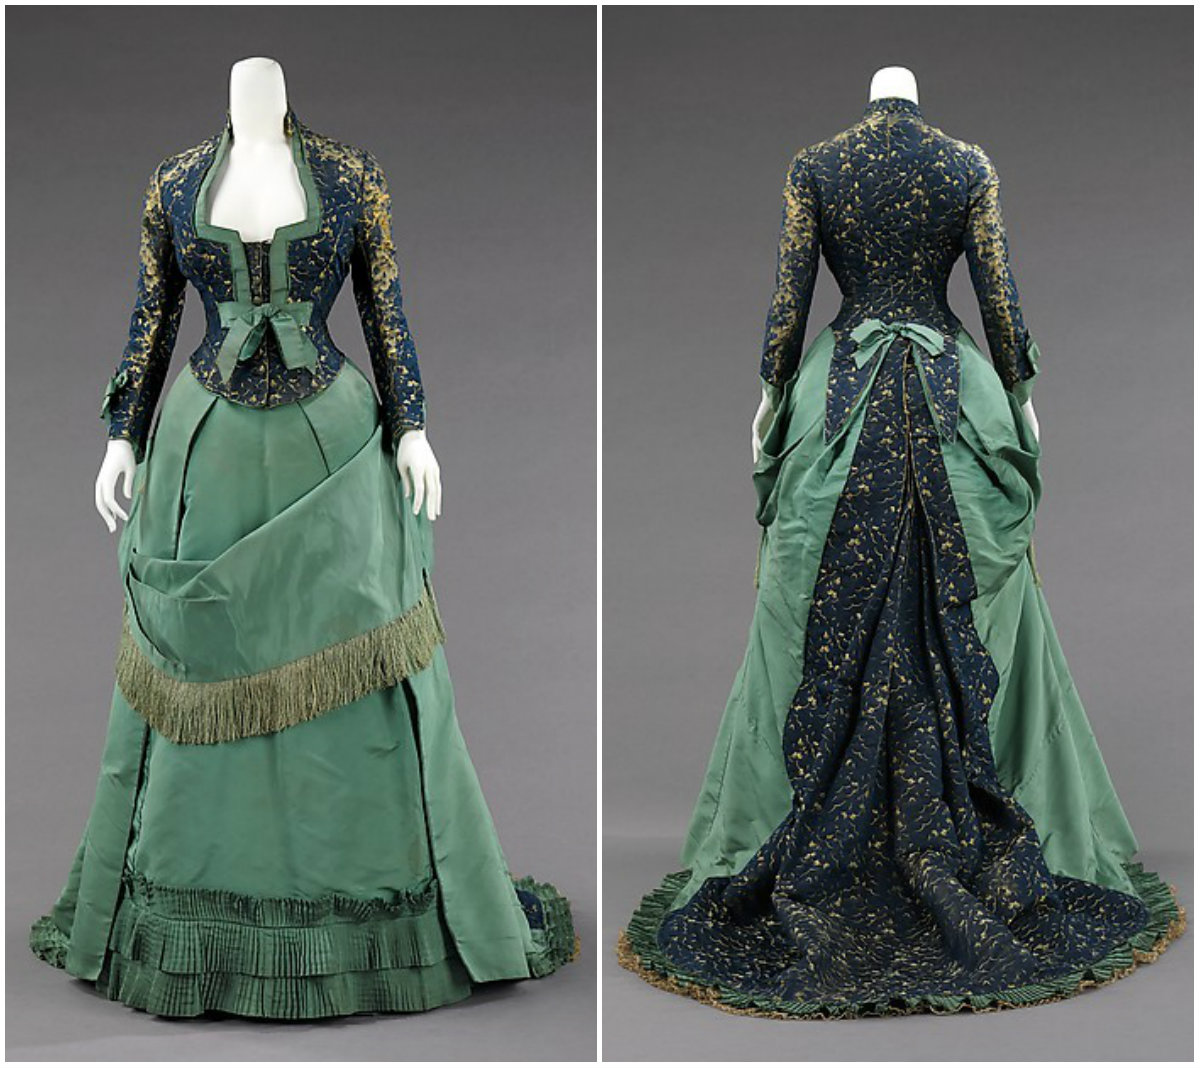 1875. Afternoon Dress. Silk. metmuseum